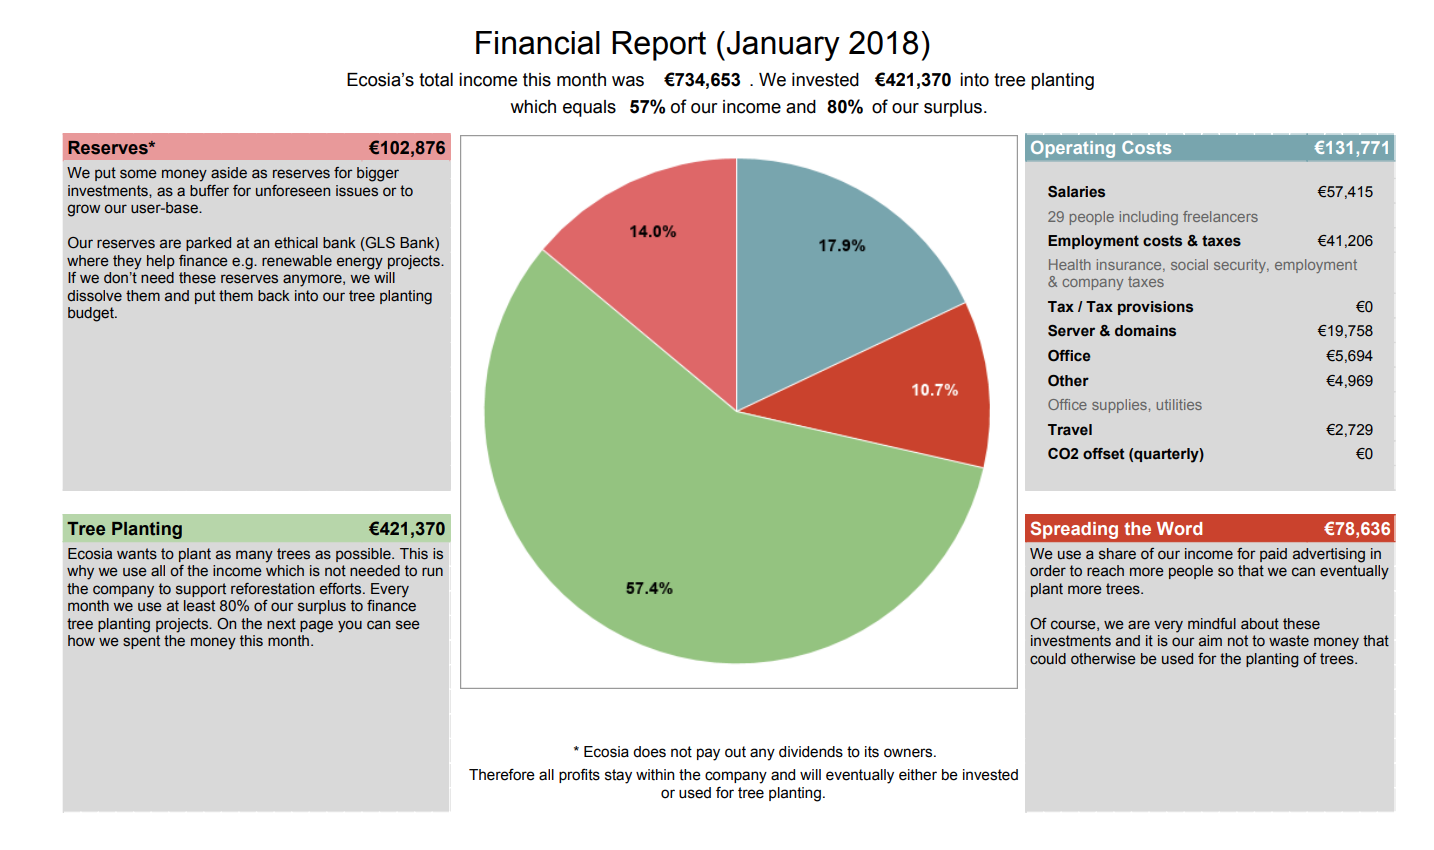 Ecosia Financial Report January 2018